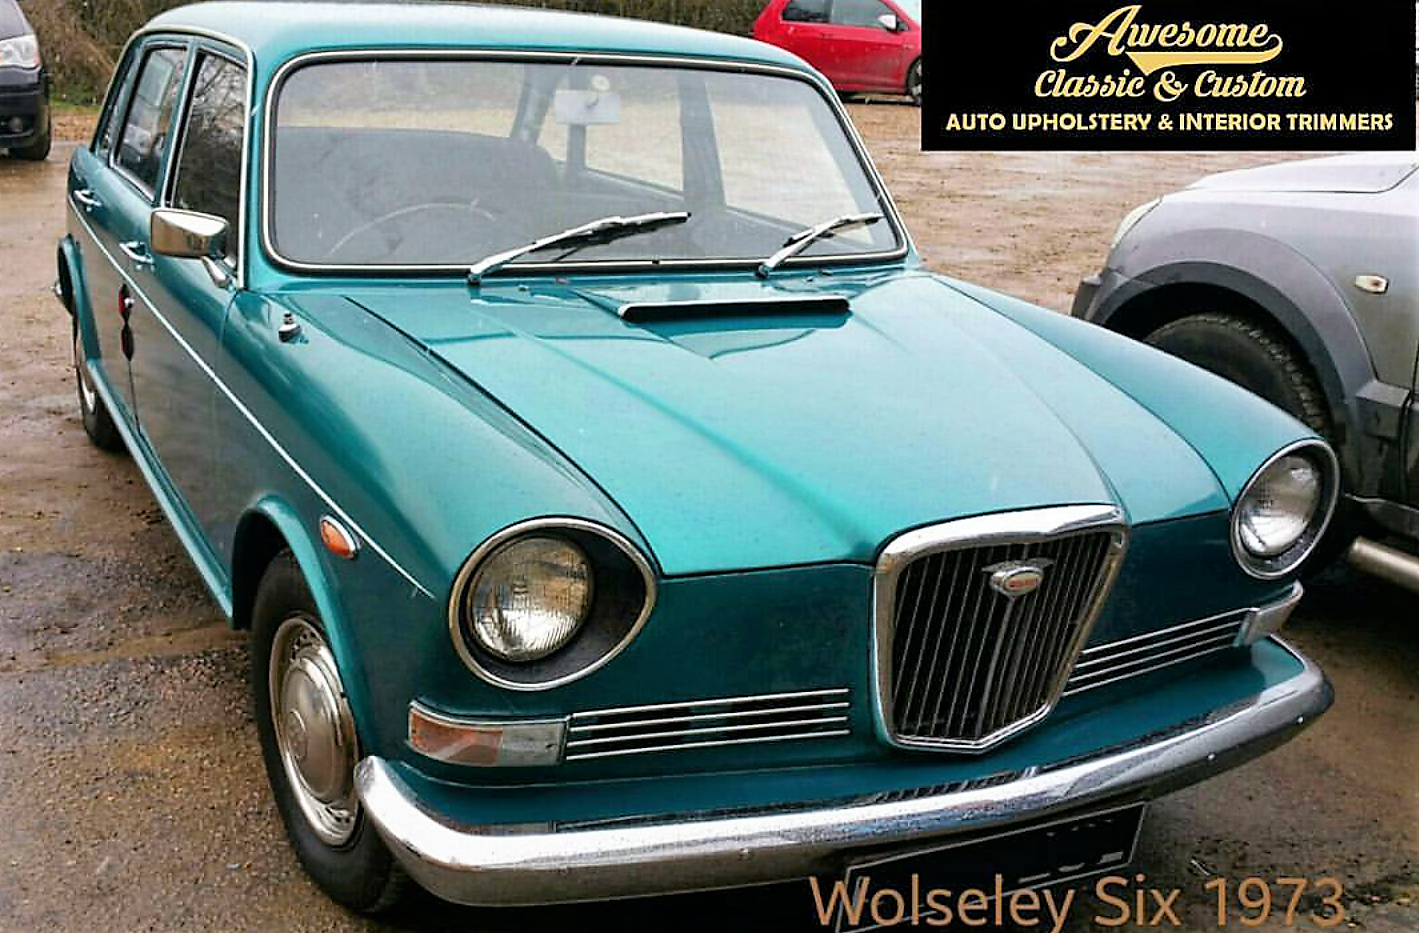 Wolseley Six 1973